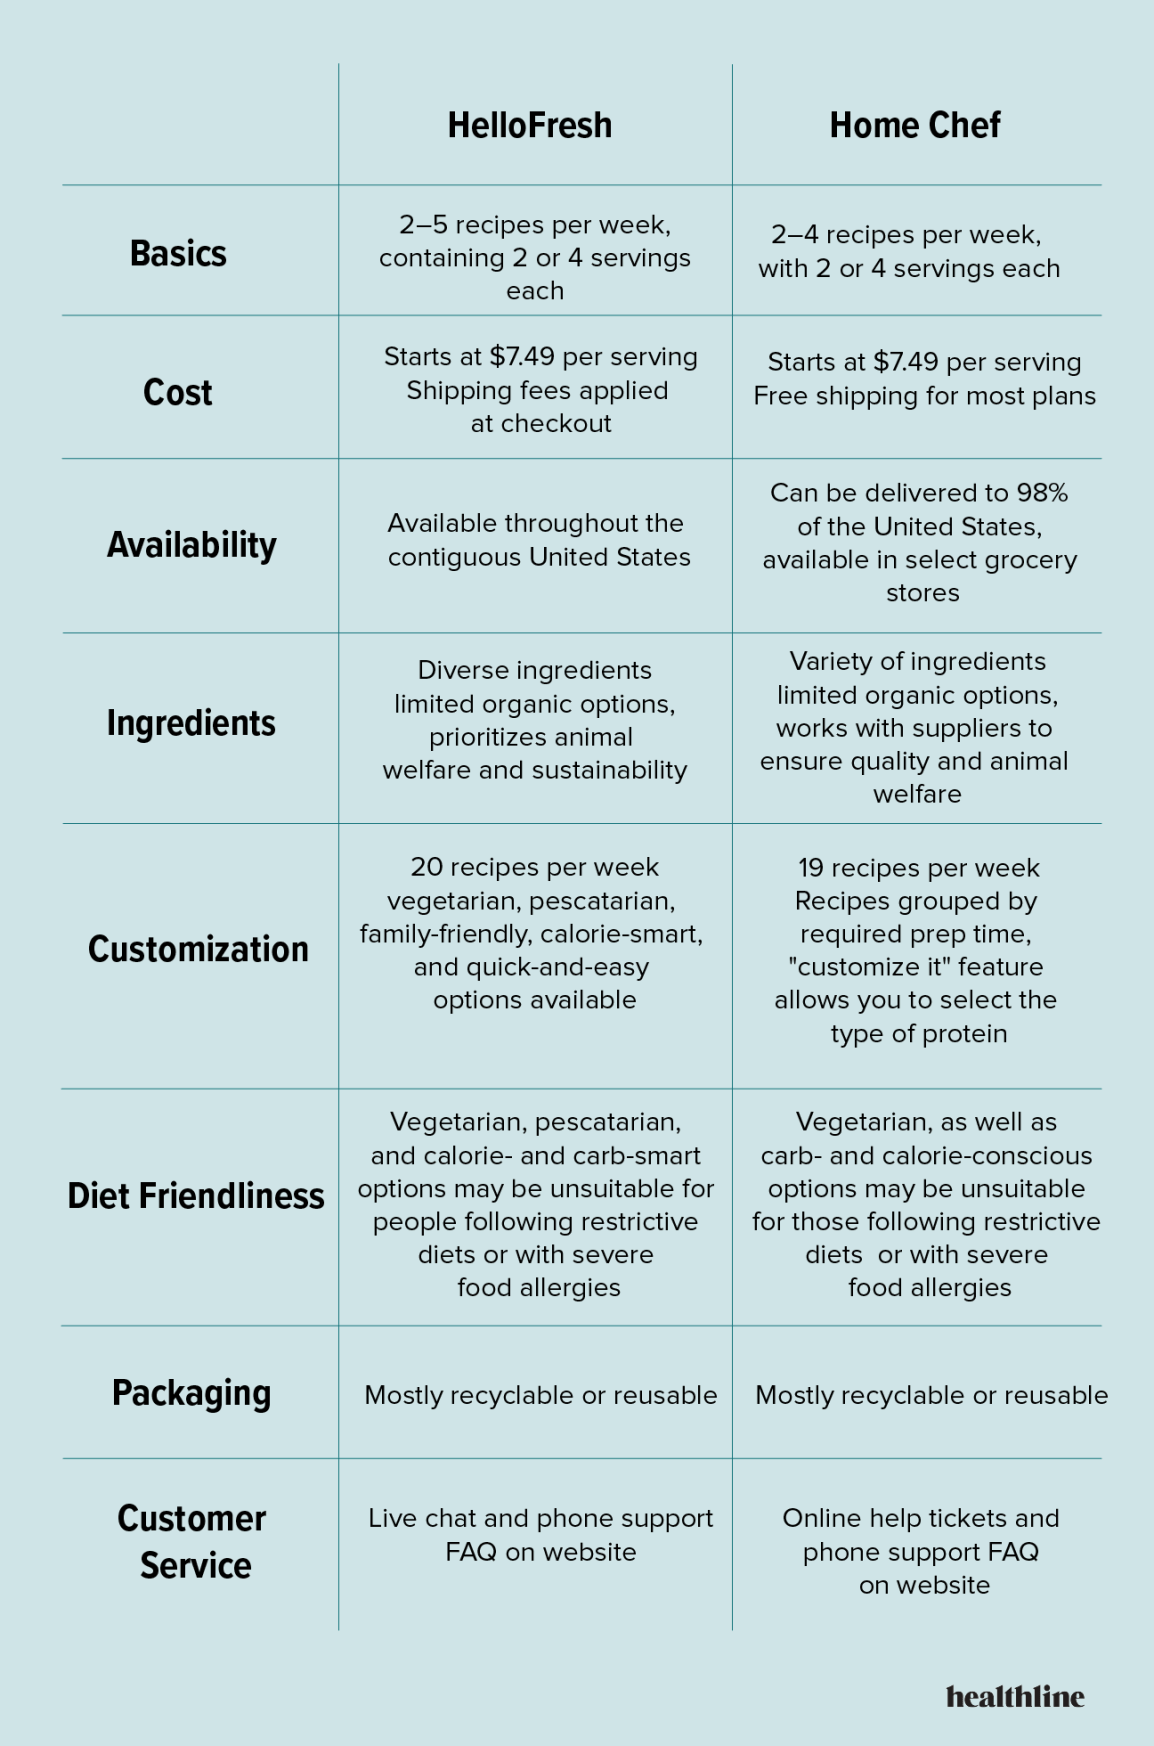 HelloFresh vs. Home Chef comparison table